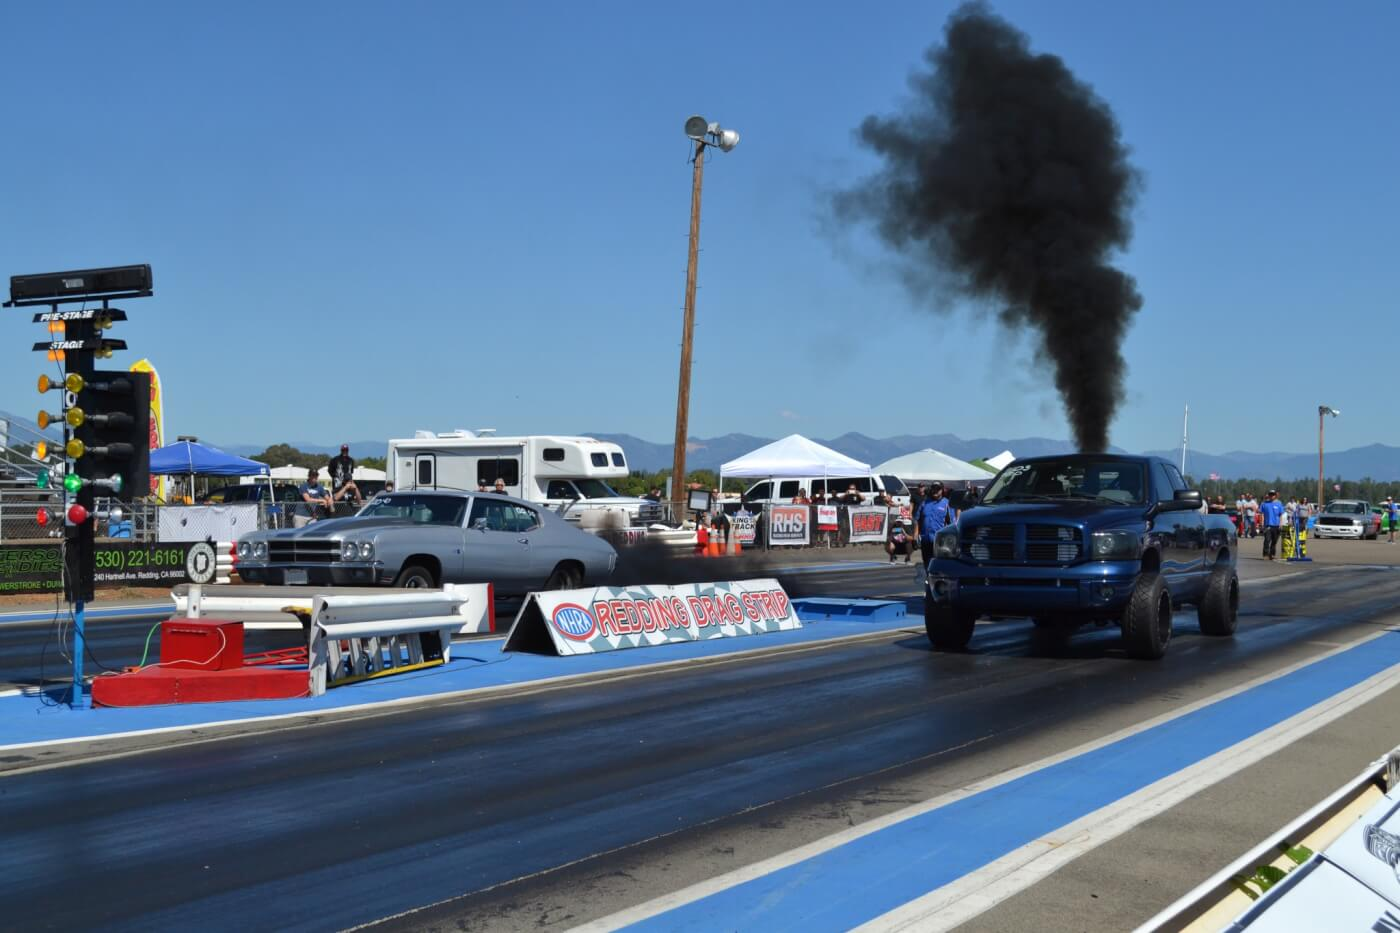 Adam Aquino (near lane) was shooting for 10s after dynoing a wild 920 hp to the wheels but ended up having to pedal the truck and ran in the low 11s (but at 123 mph). The Duramax-powered Chevelle in the other lane belongs to Rick Fletes and ran an impressive 11.7 at 115 mph on a bone stock engine with a tune!